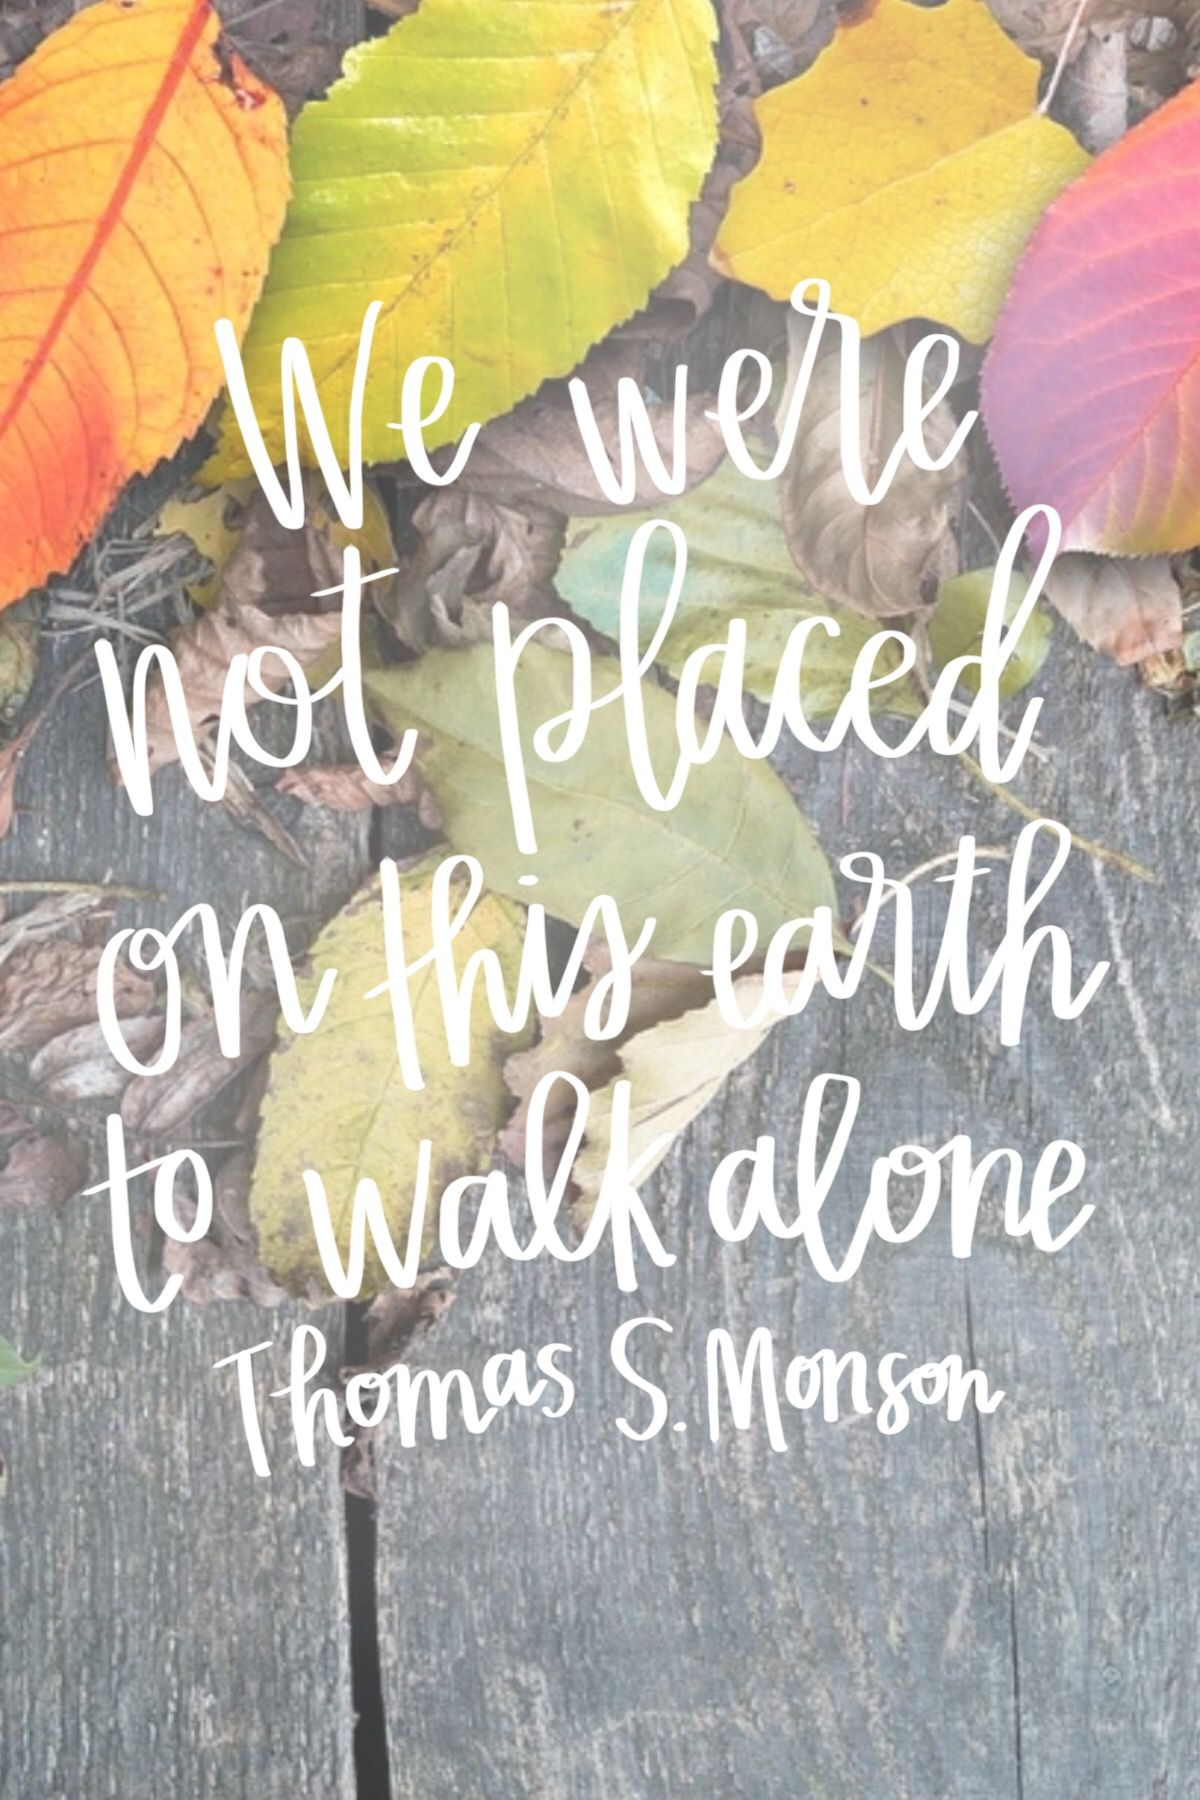 "Mormon Quotes Pleasing We Were Not Placed On This Earth To Walk Alone"" Thomas Smonson"